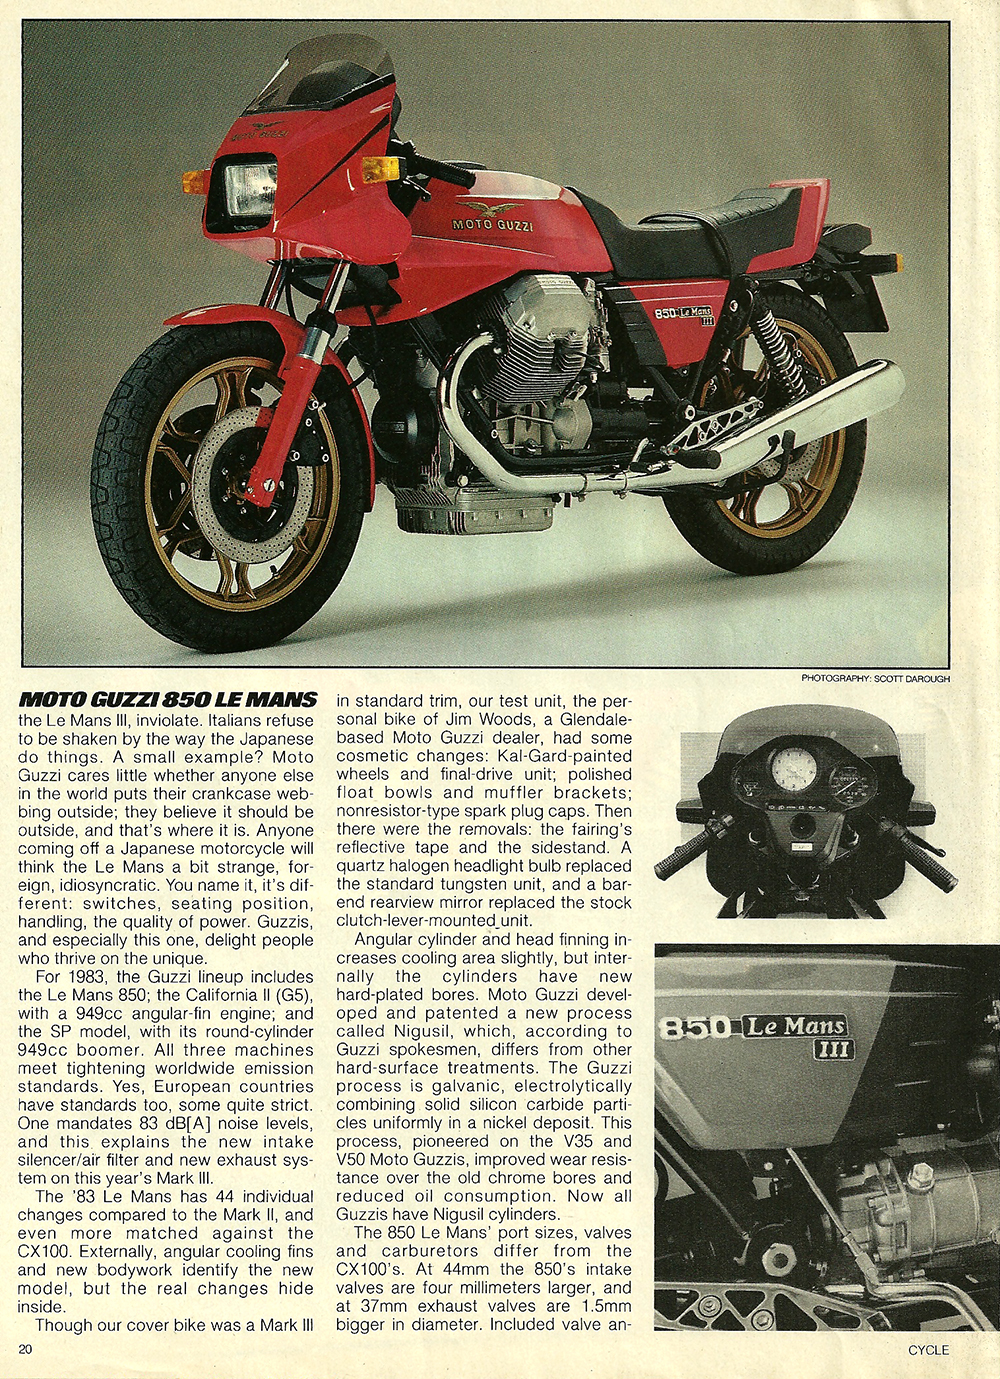 1983 Moto Guzzi 850 Lemans 3 road test 3.jpg